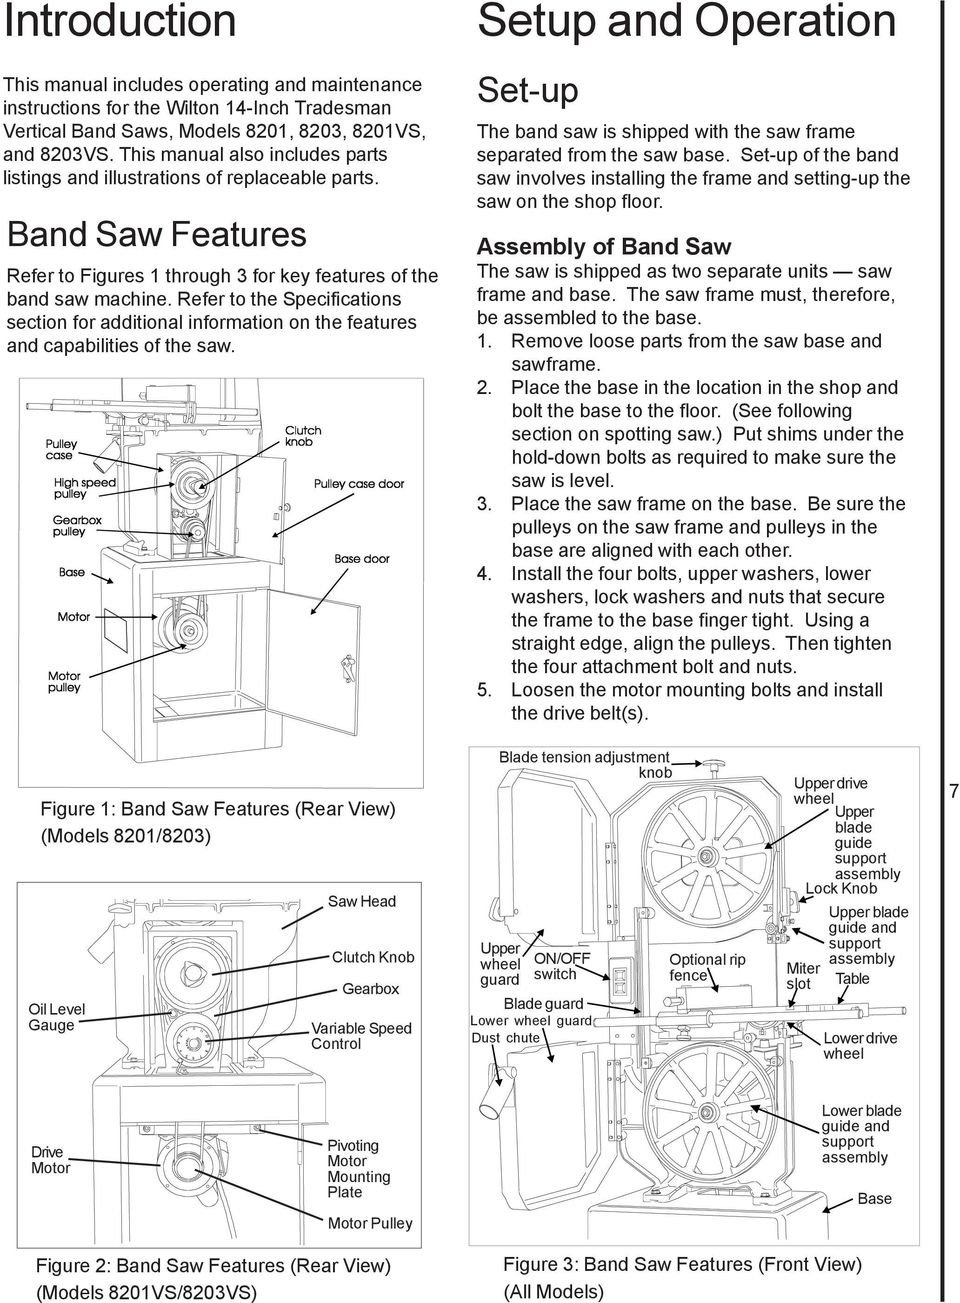 Refer to the Specifications section for additional information on the  features and capabilities of the saw